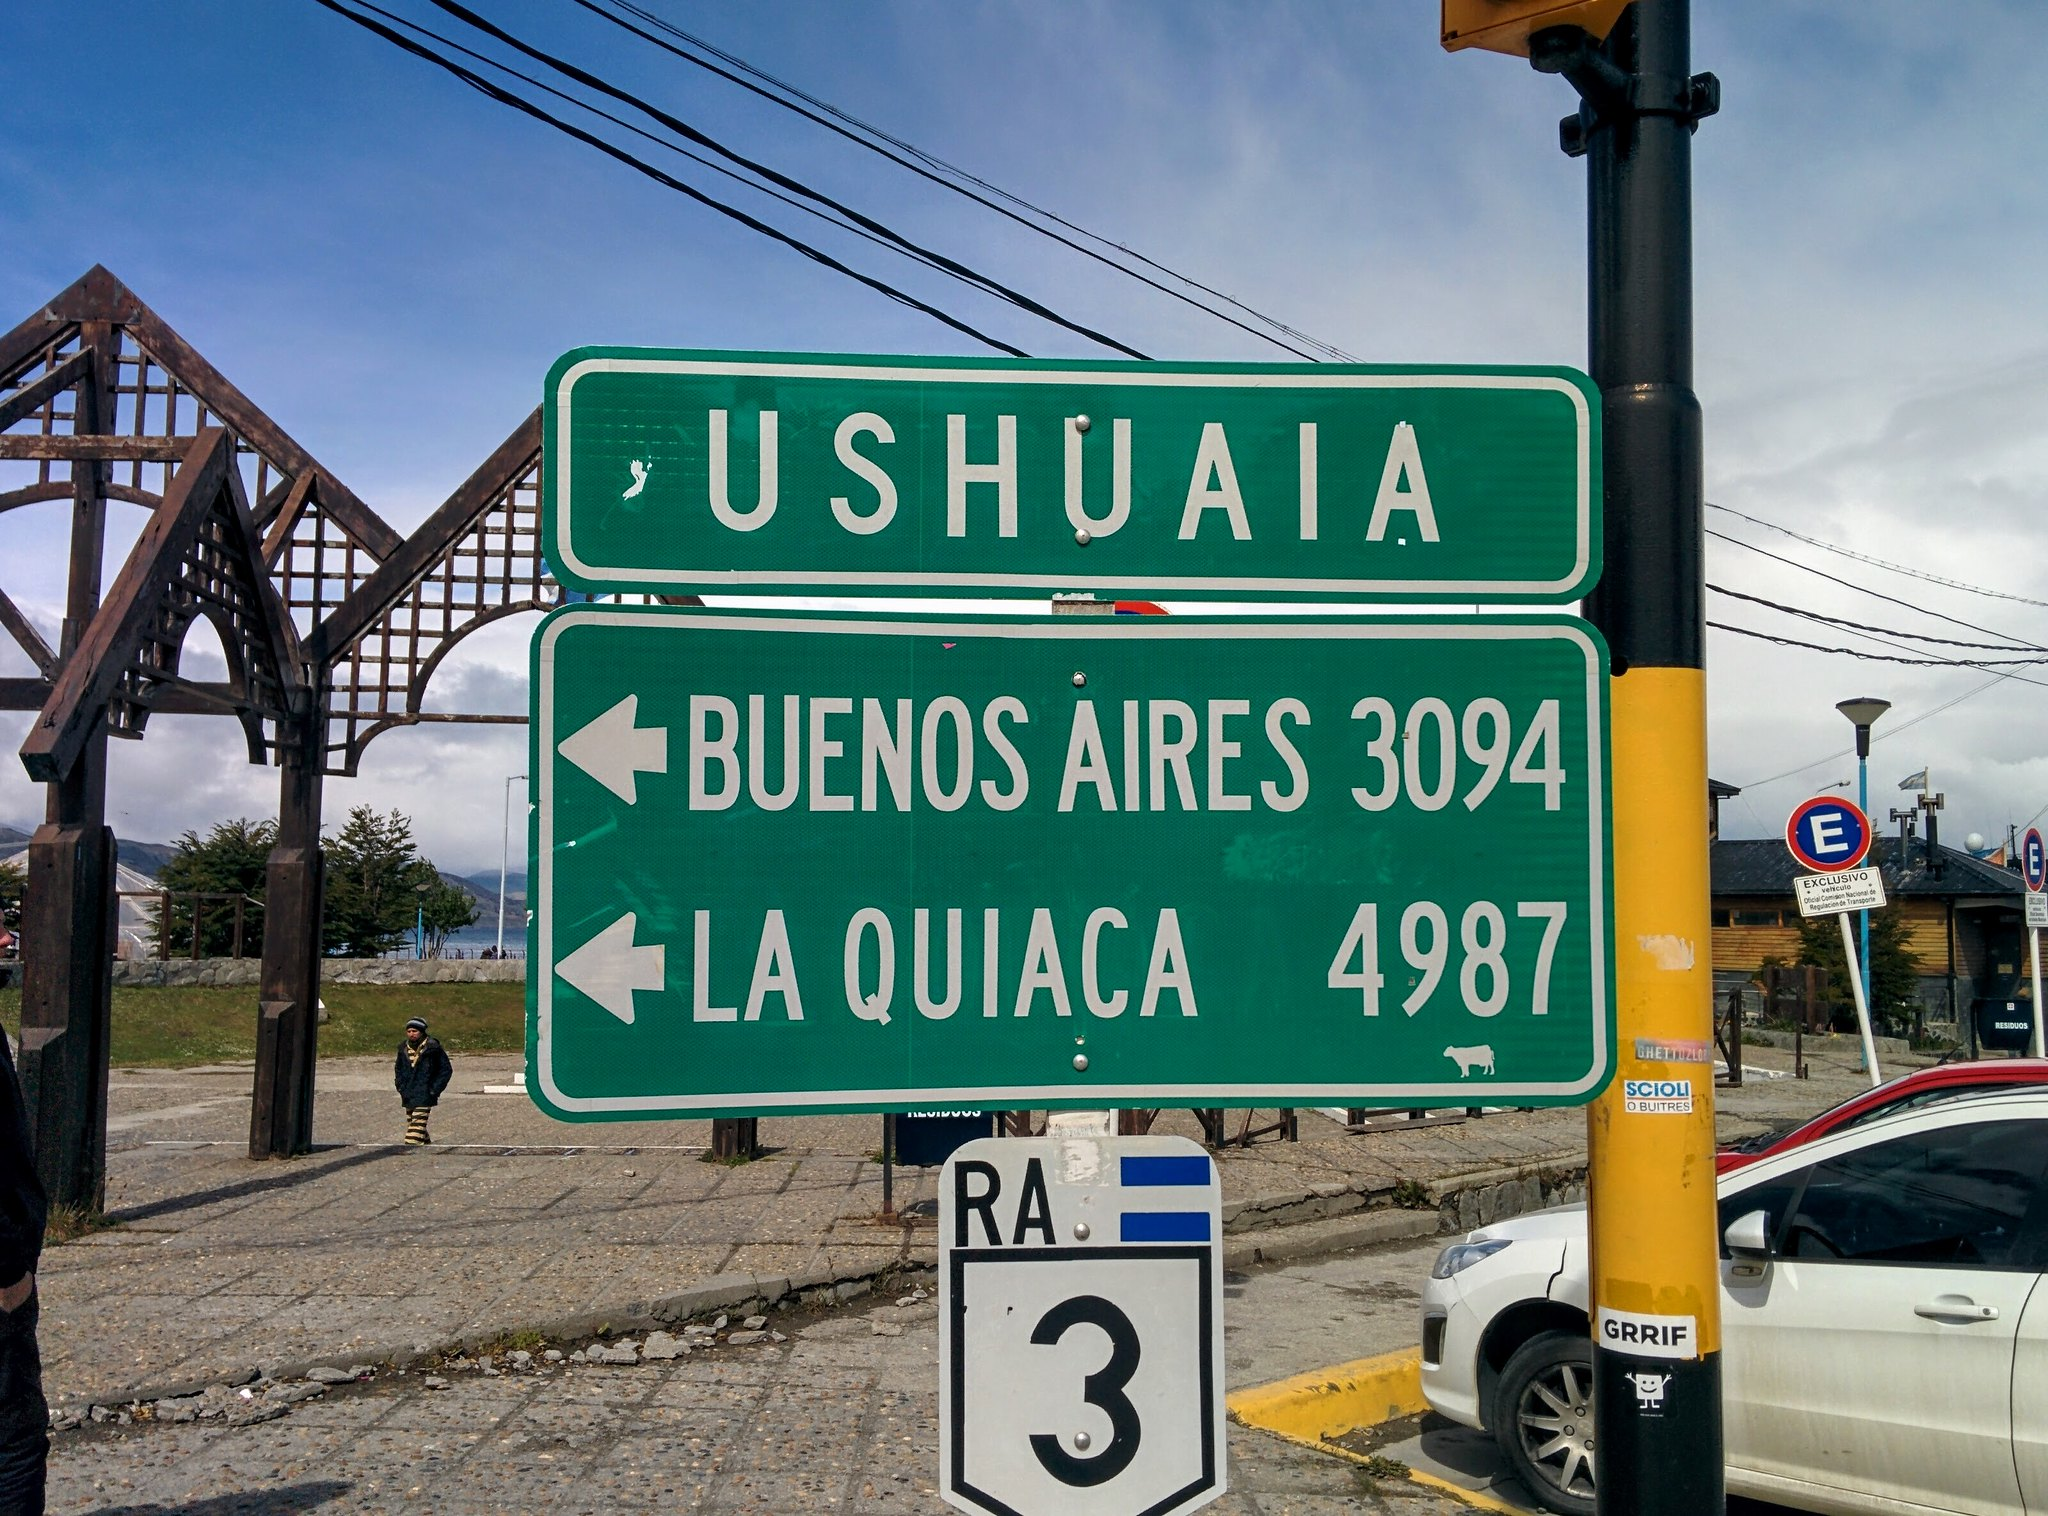 A sign in Ushuaia giving distance to Buenos Aires and La Quiaca